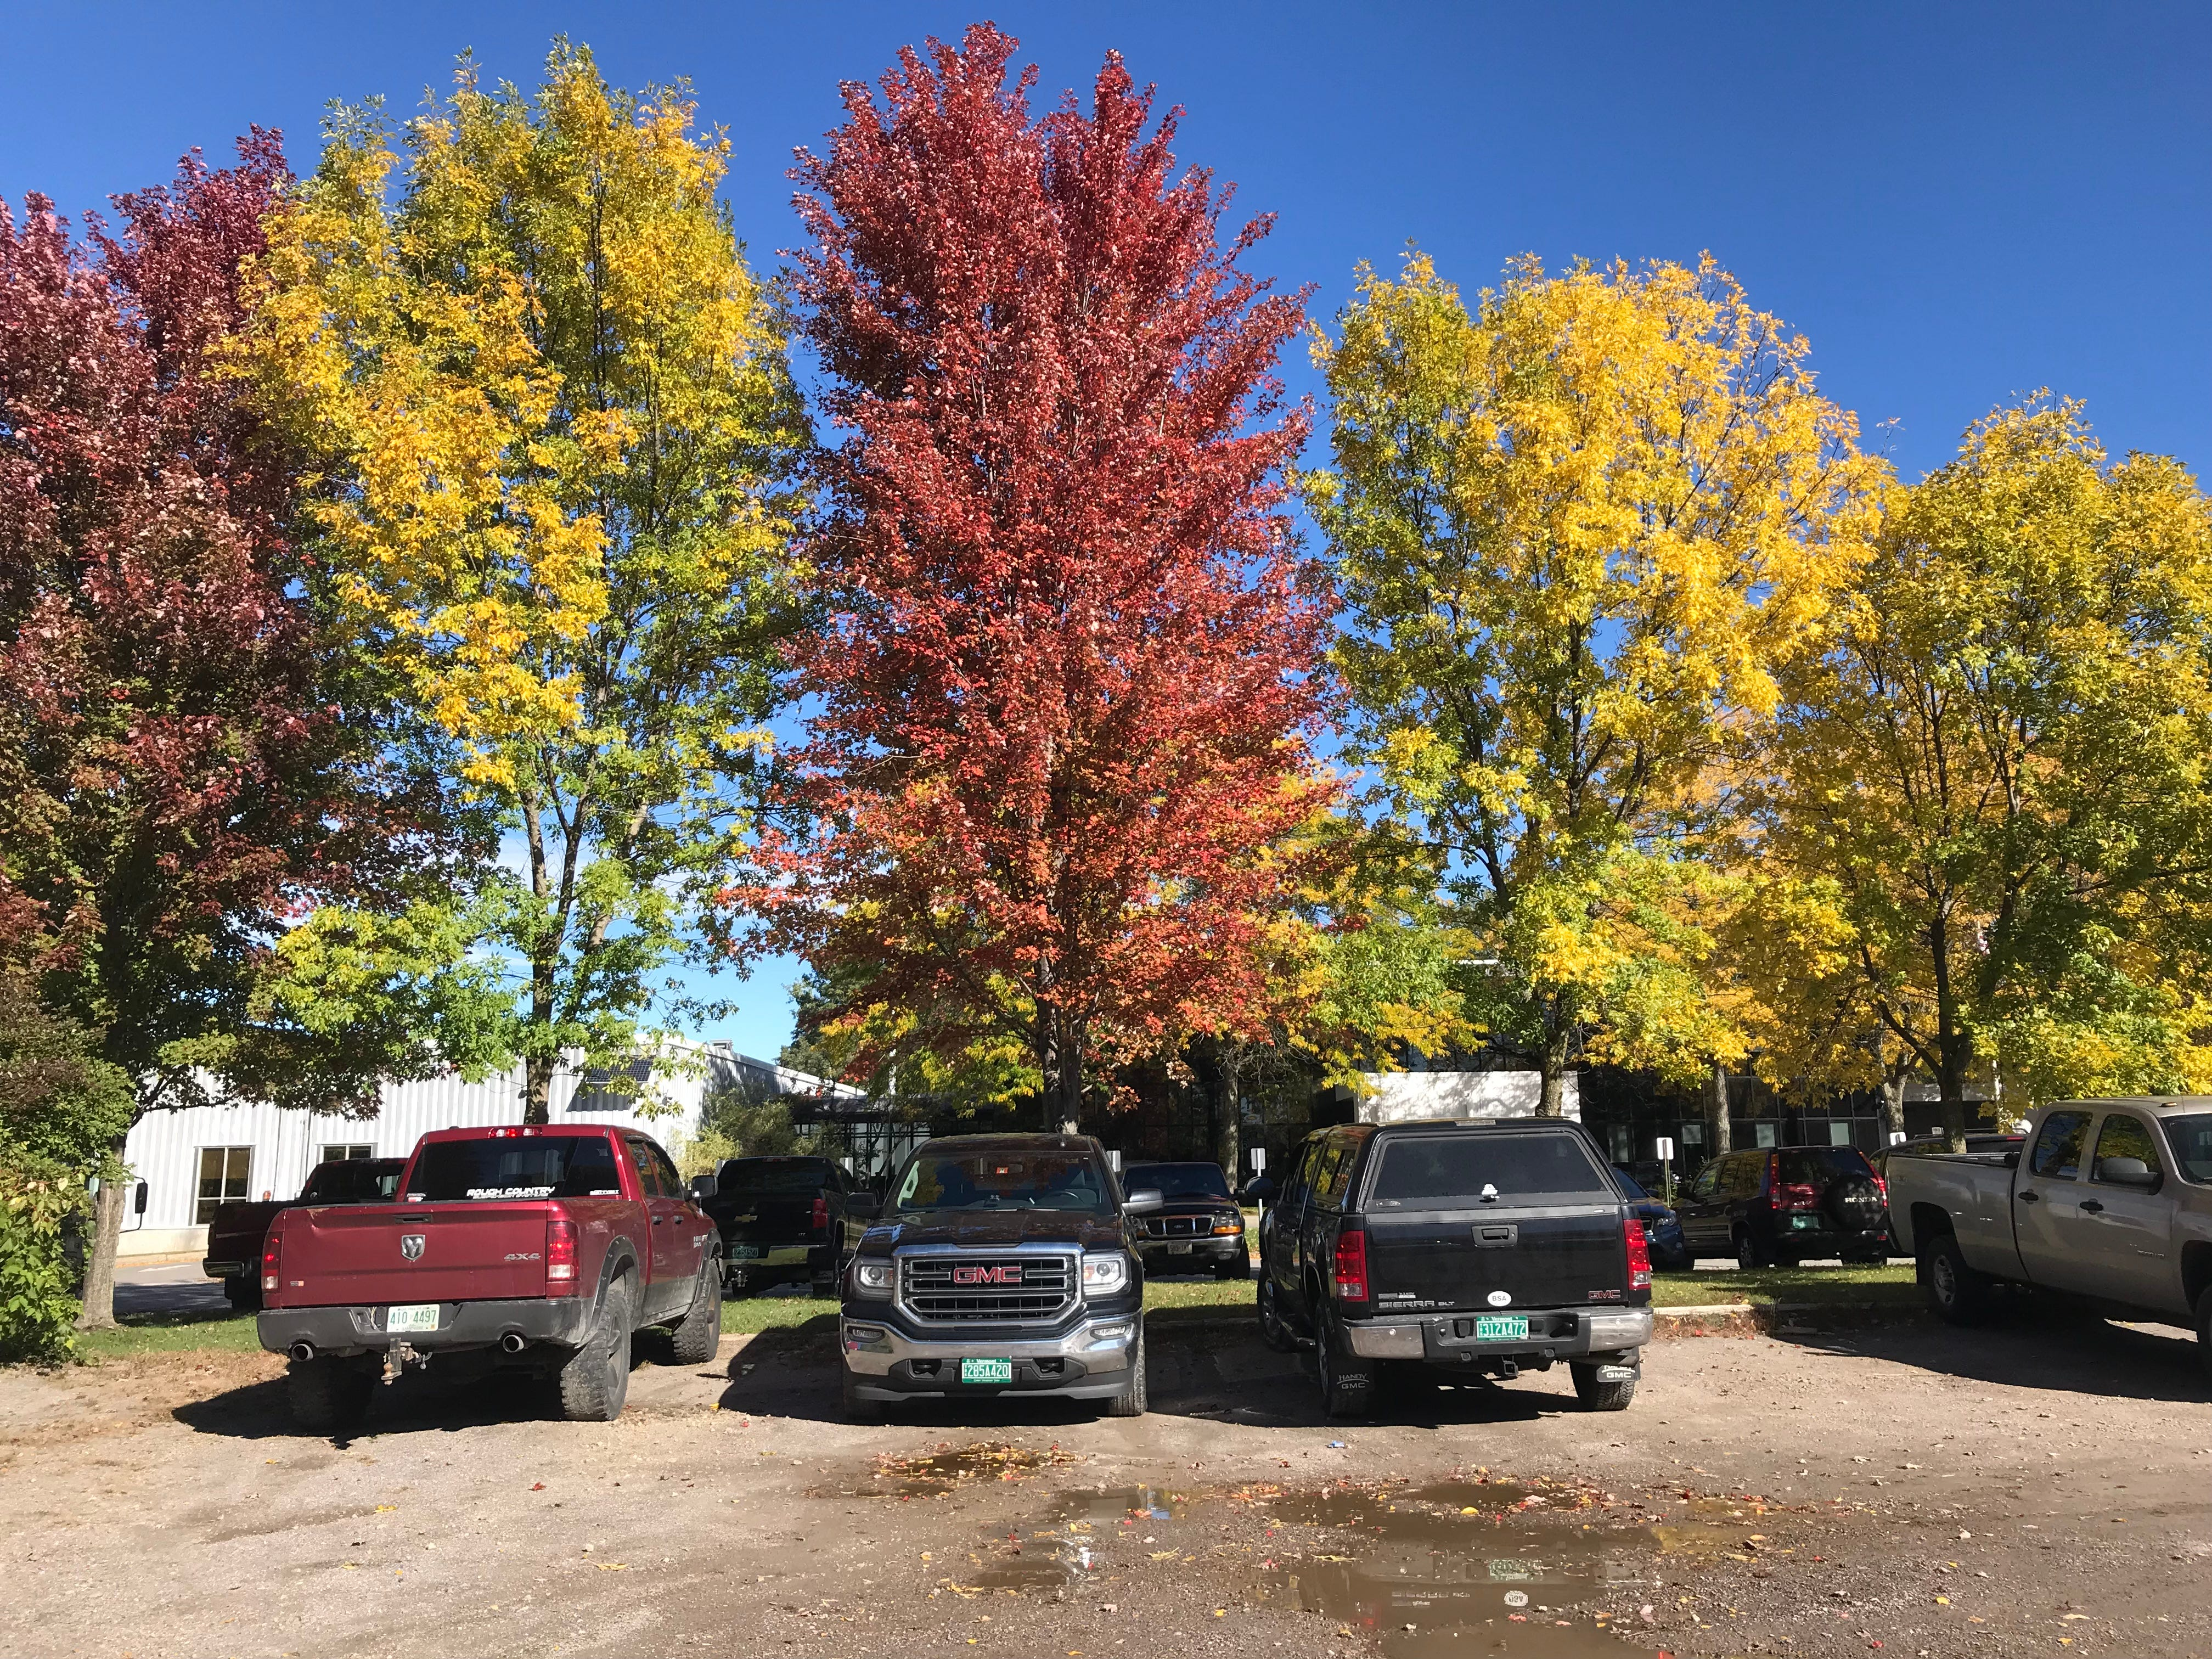 Leaves range from green to gold to deep red at the Burlington Electric Department parking lot on Oct. 5, 2018.